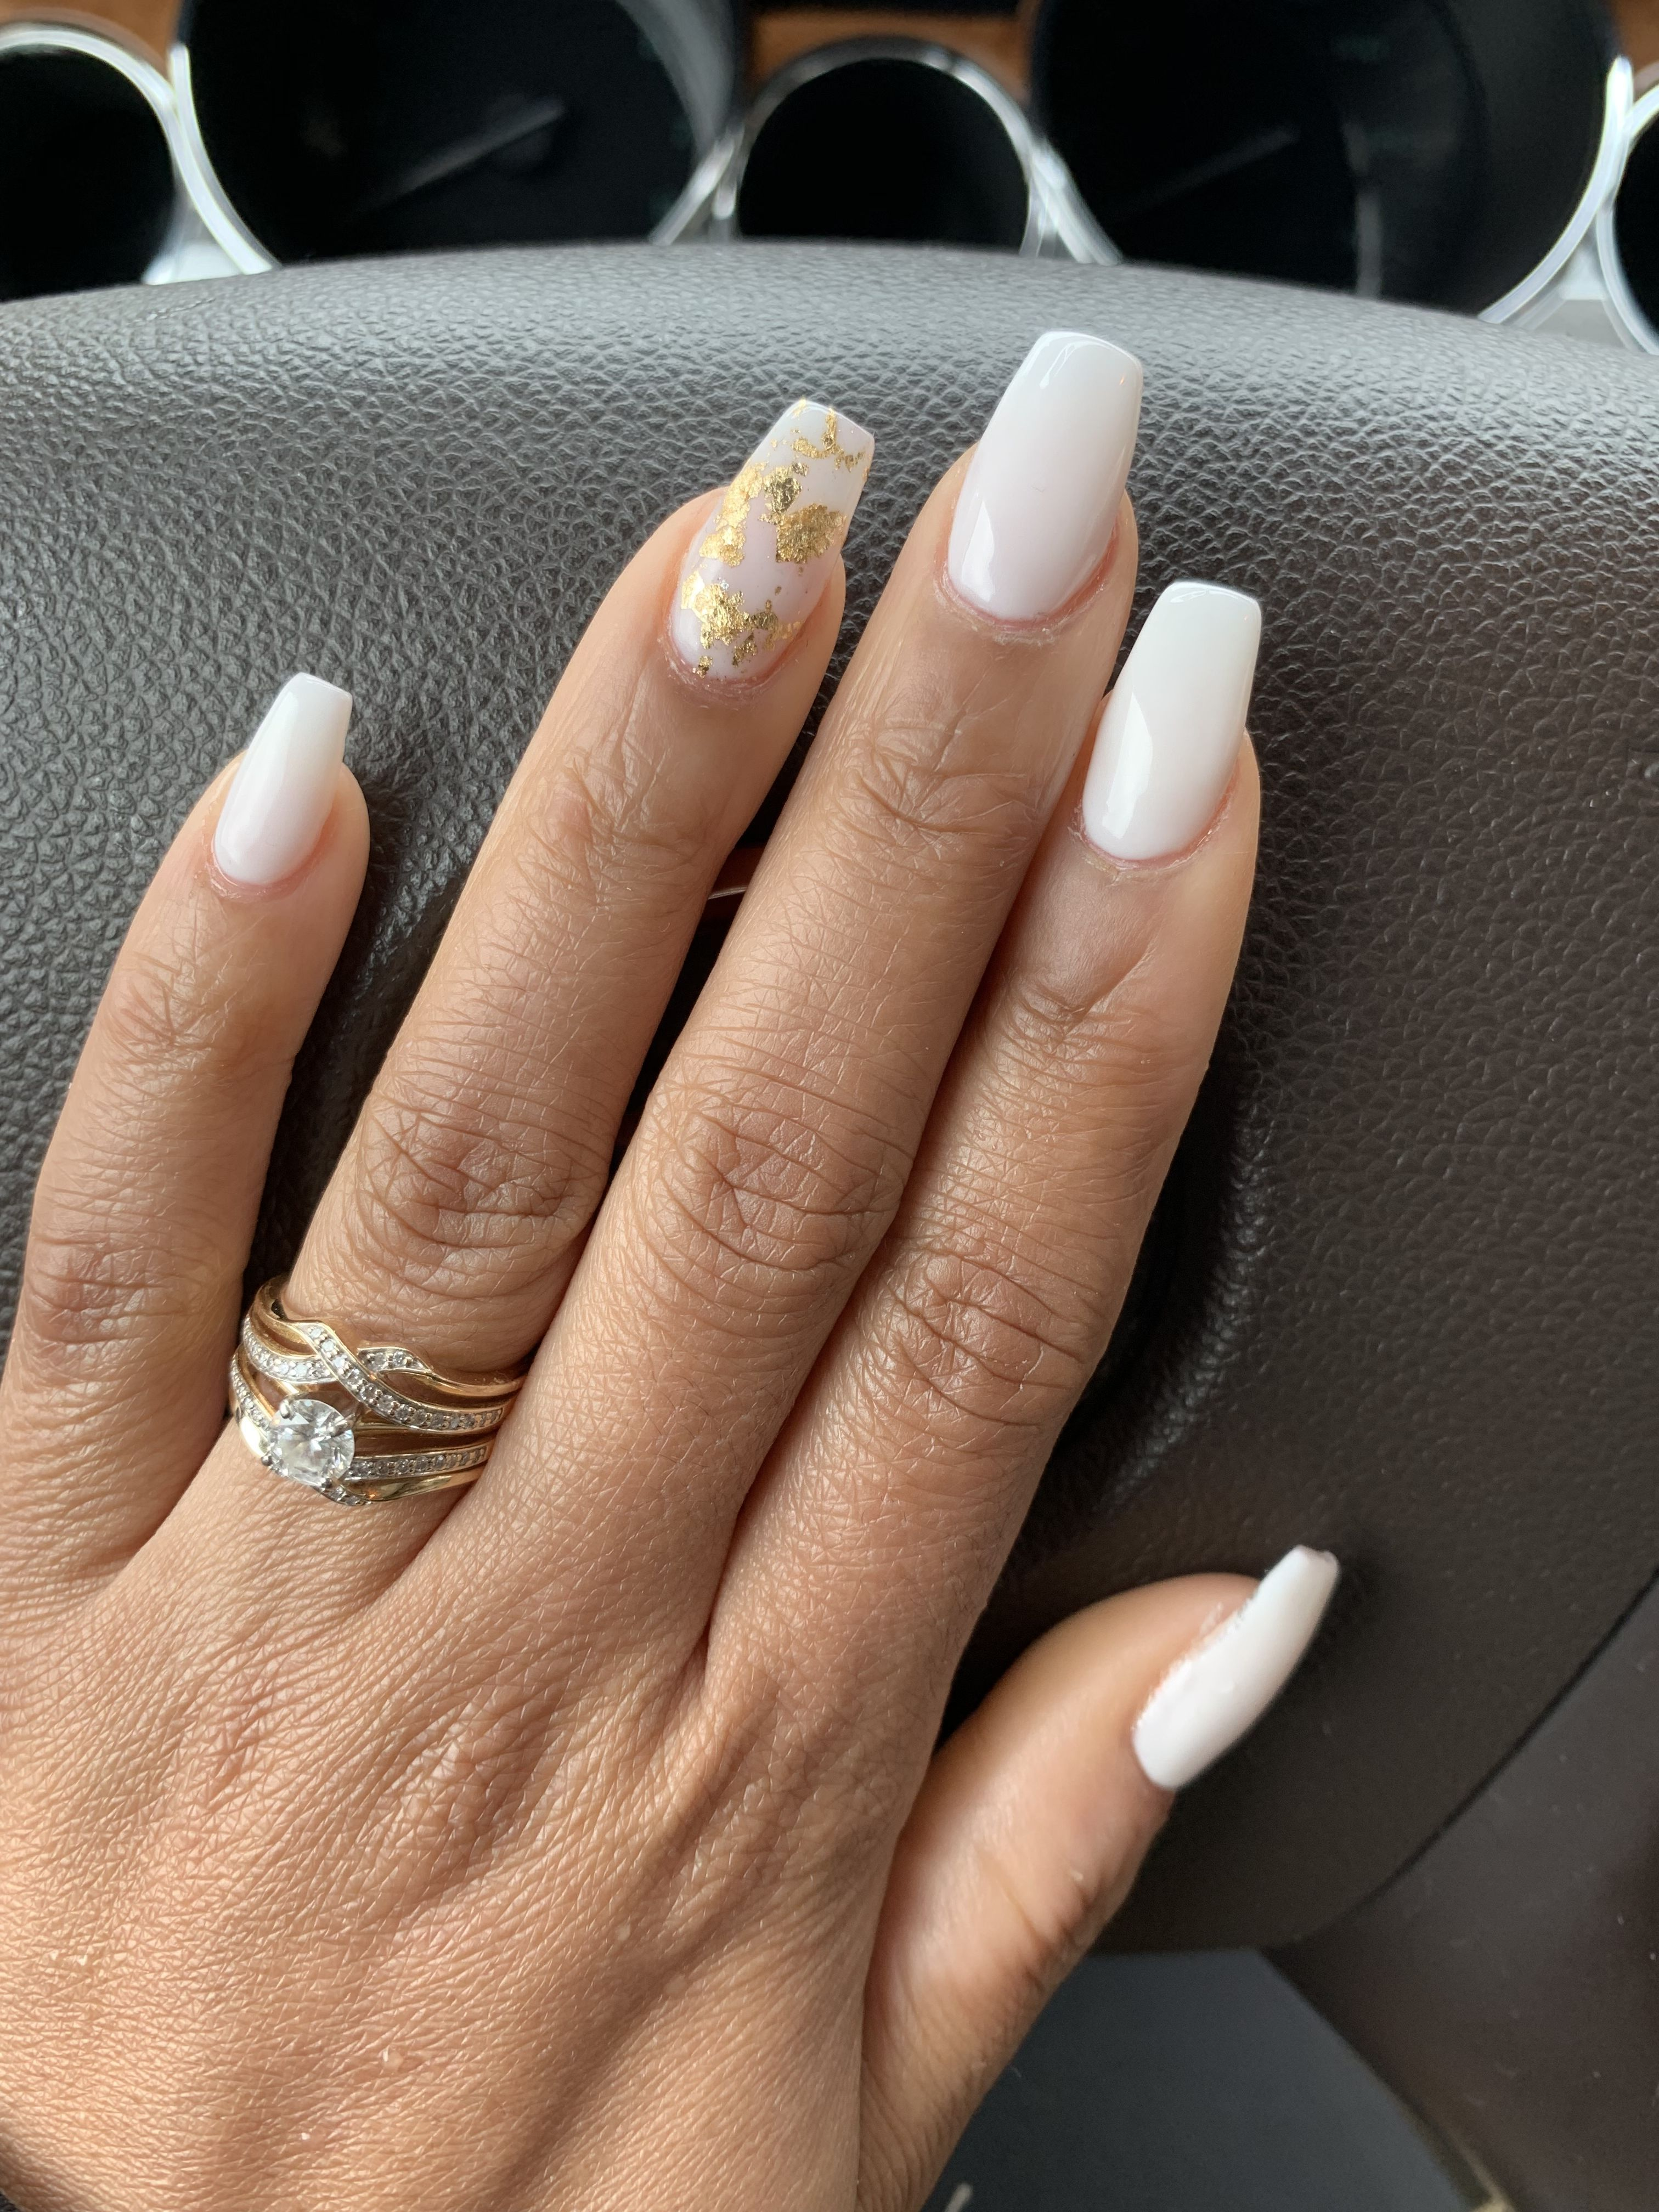 Soft White Acrylic With Gold Flakes Perfect For Spring And Summer Acrylicoverlay Naturalnails Su In 2020 White Nails With Gold Gold Nails Prom Gold Acrylic Nails